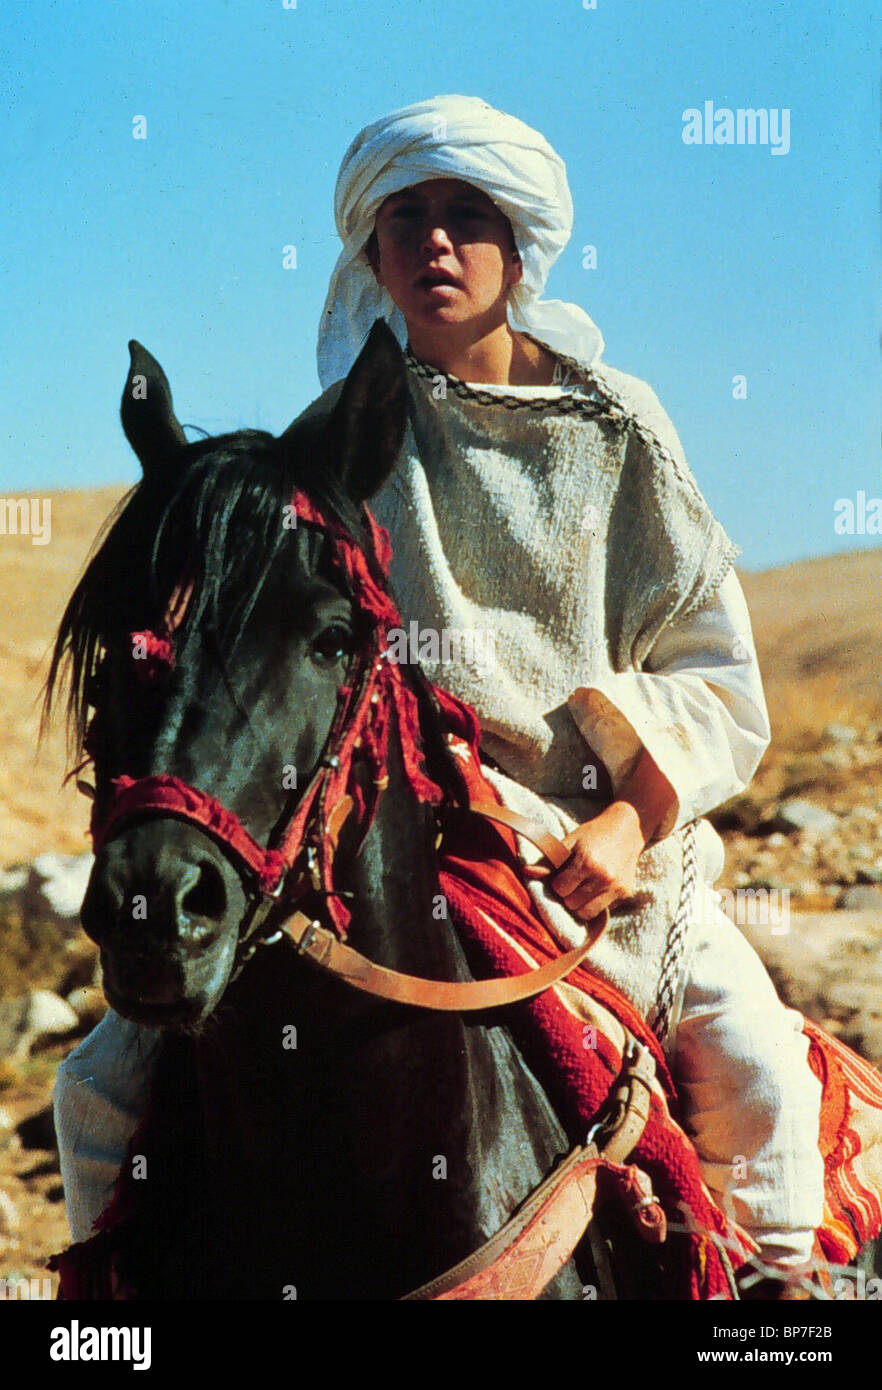 KELLY RENO & BLACK HORSE THE BLACK STALLION (1979) - Stock Image